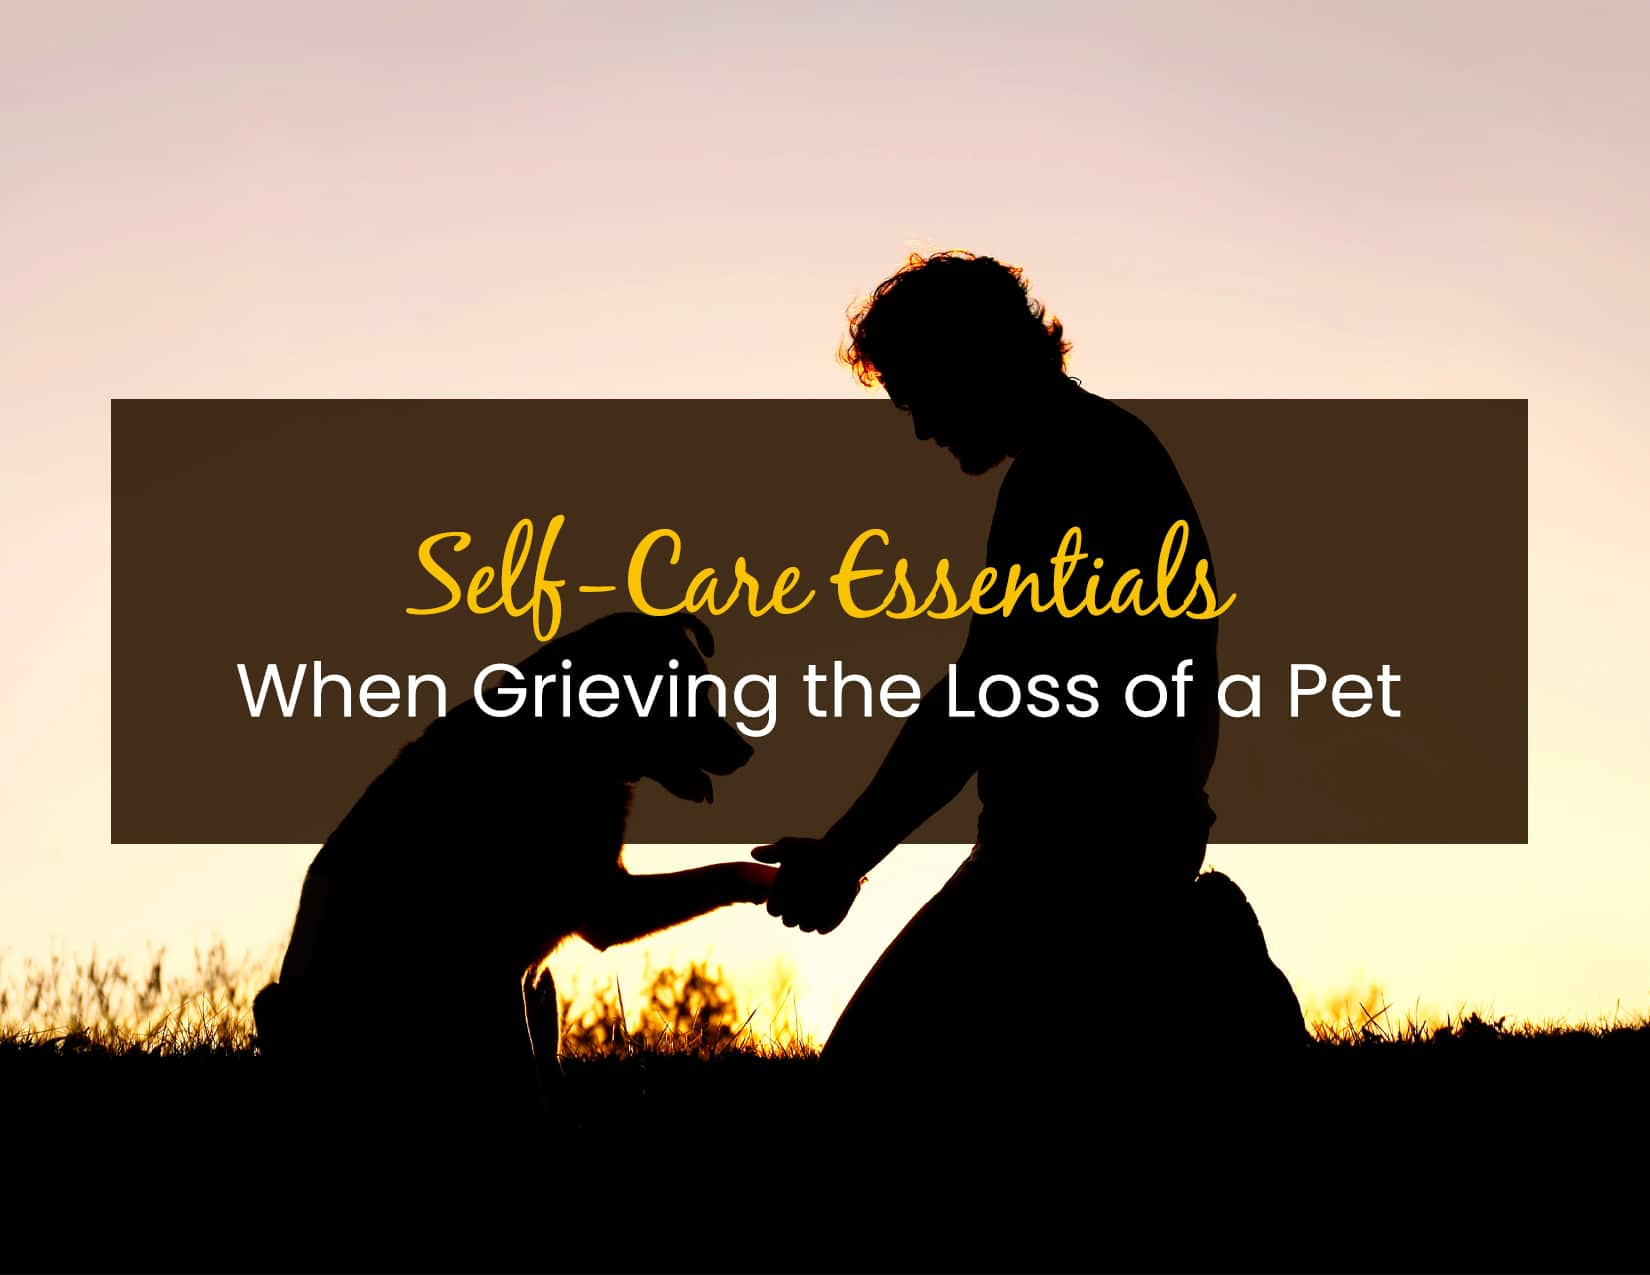 Self-Care Essentials When Grieving the Loss of a Pet - WP